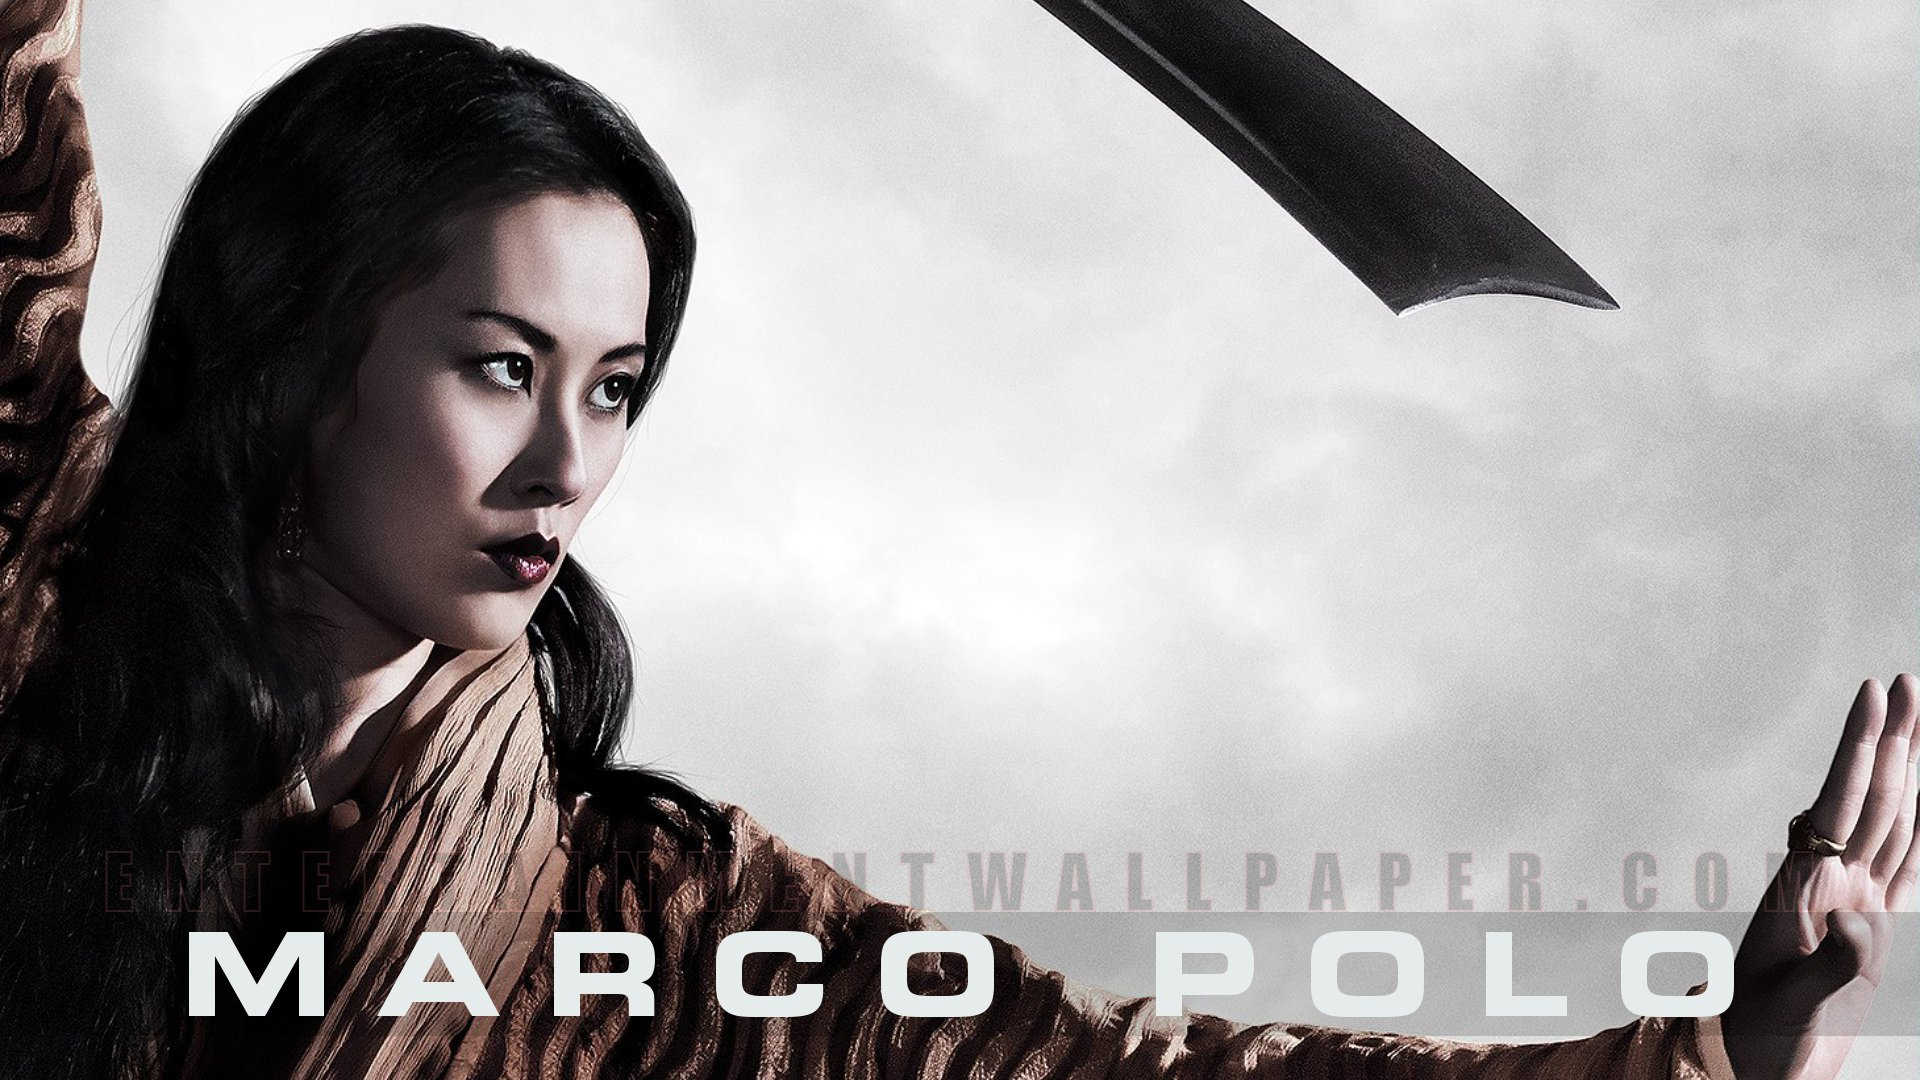 Marco Polo Wallpaper - WallpaperSafari - 365.1KB